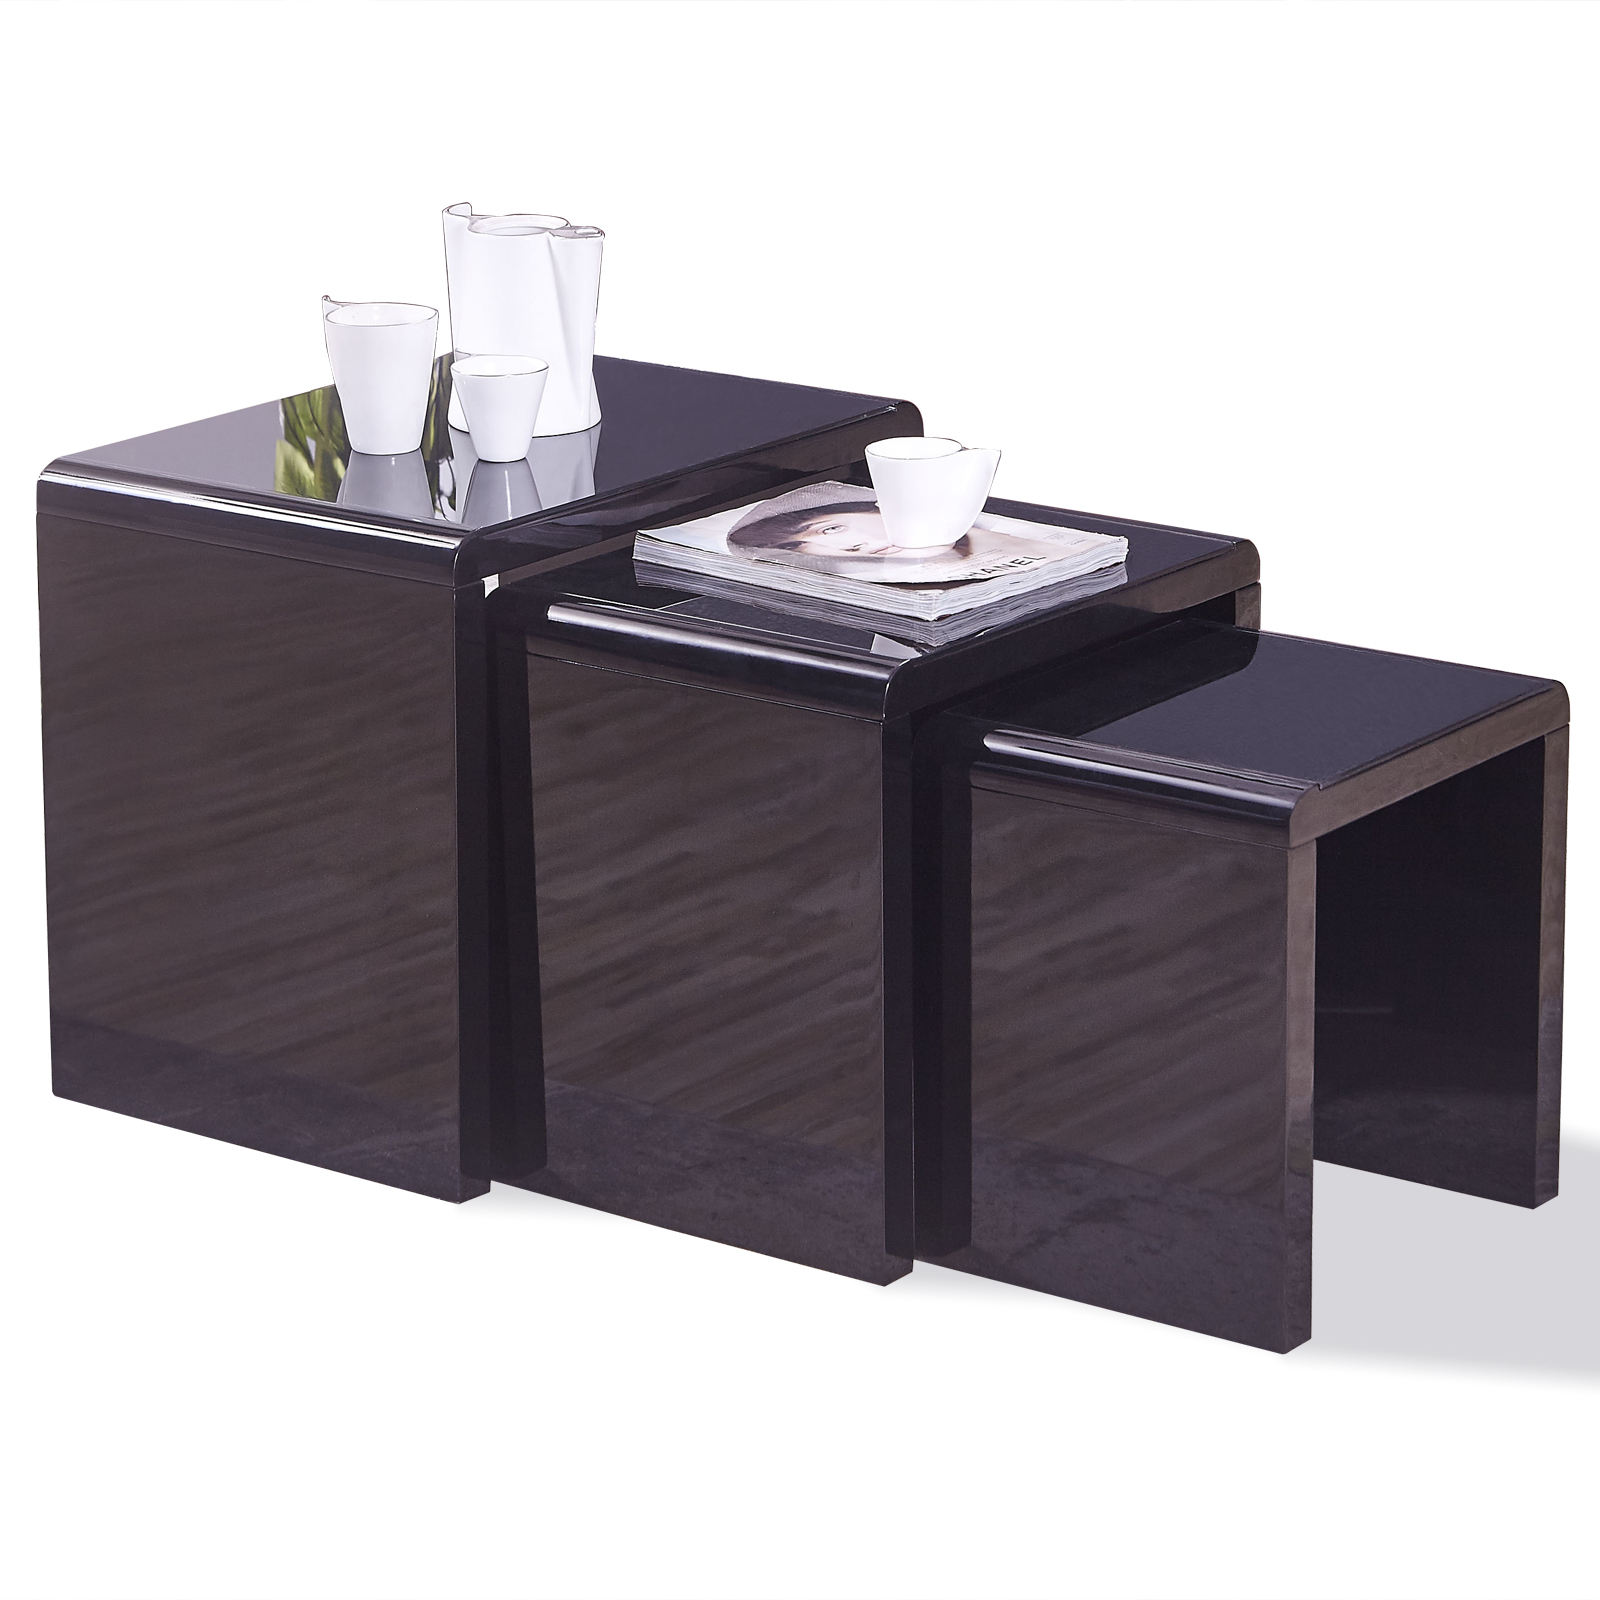 appealing black glass coffee table living room | New Design High Gloss Black + Black Glass Nest of 3 Coffee ...